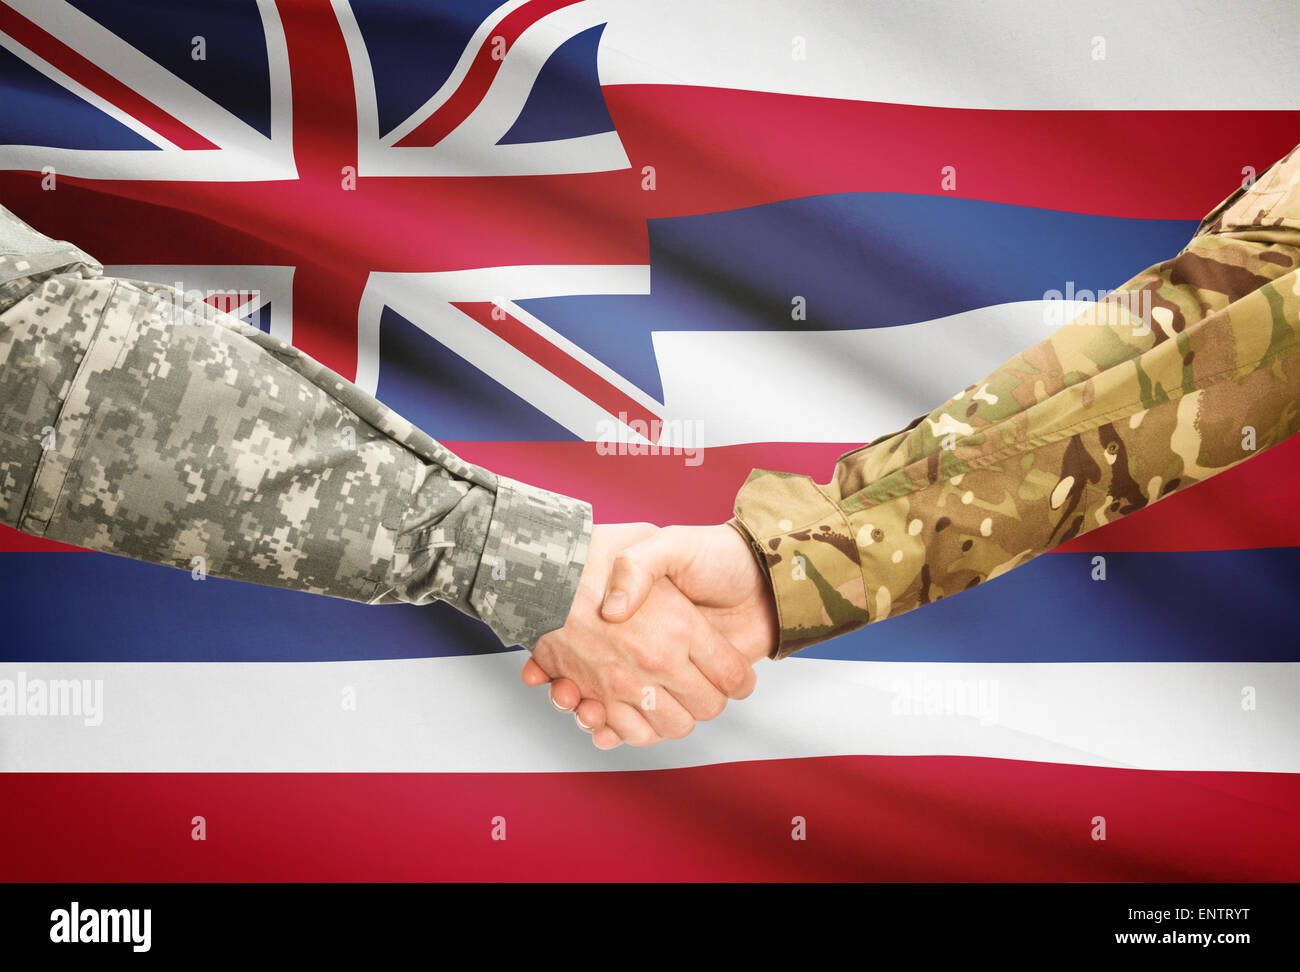 Soldiers handshake and US state flag - Hawaii - Stock Image